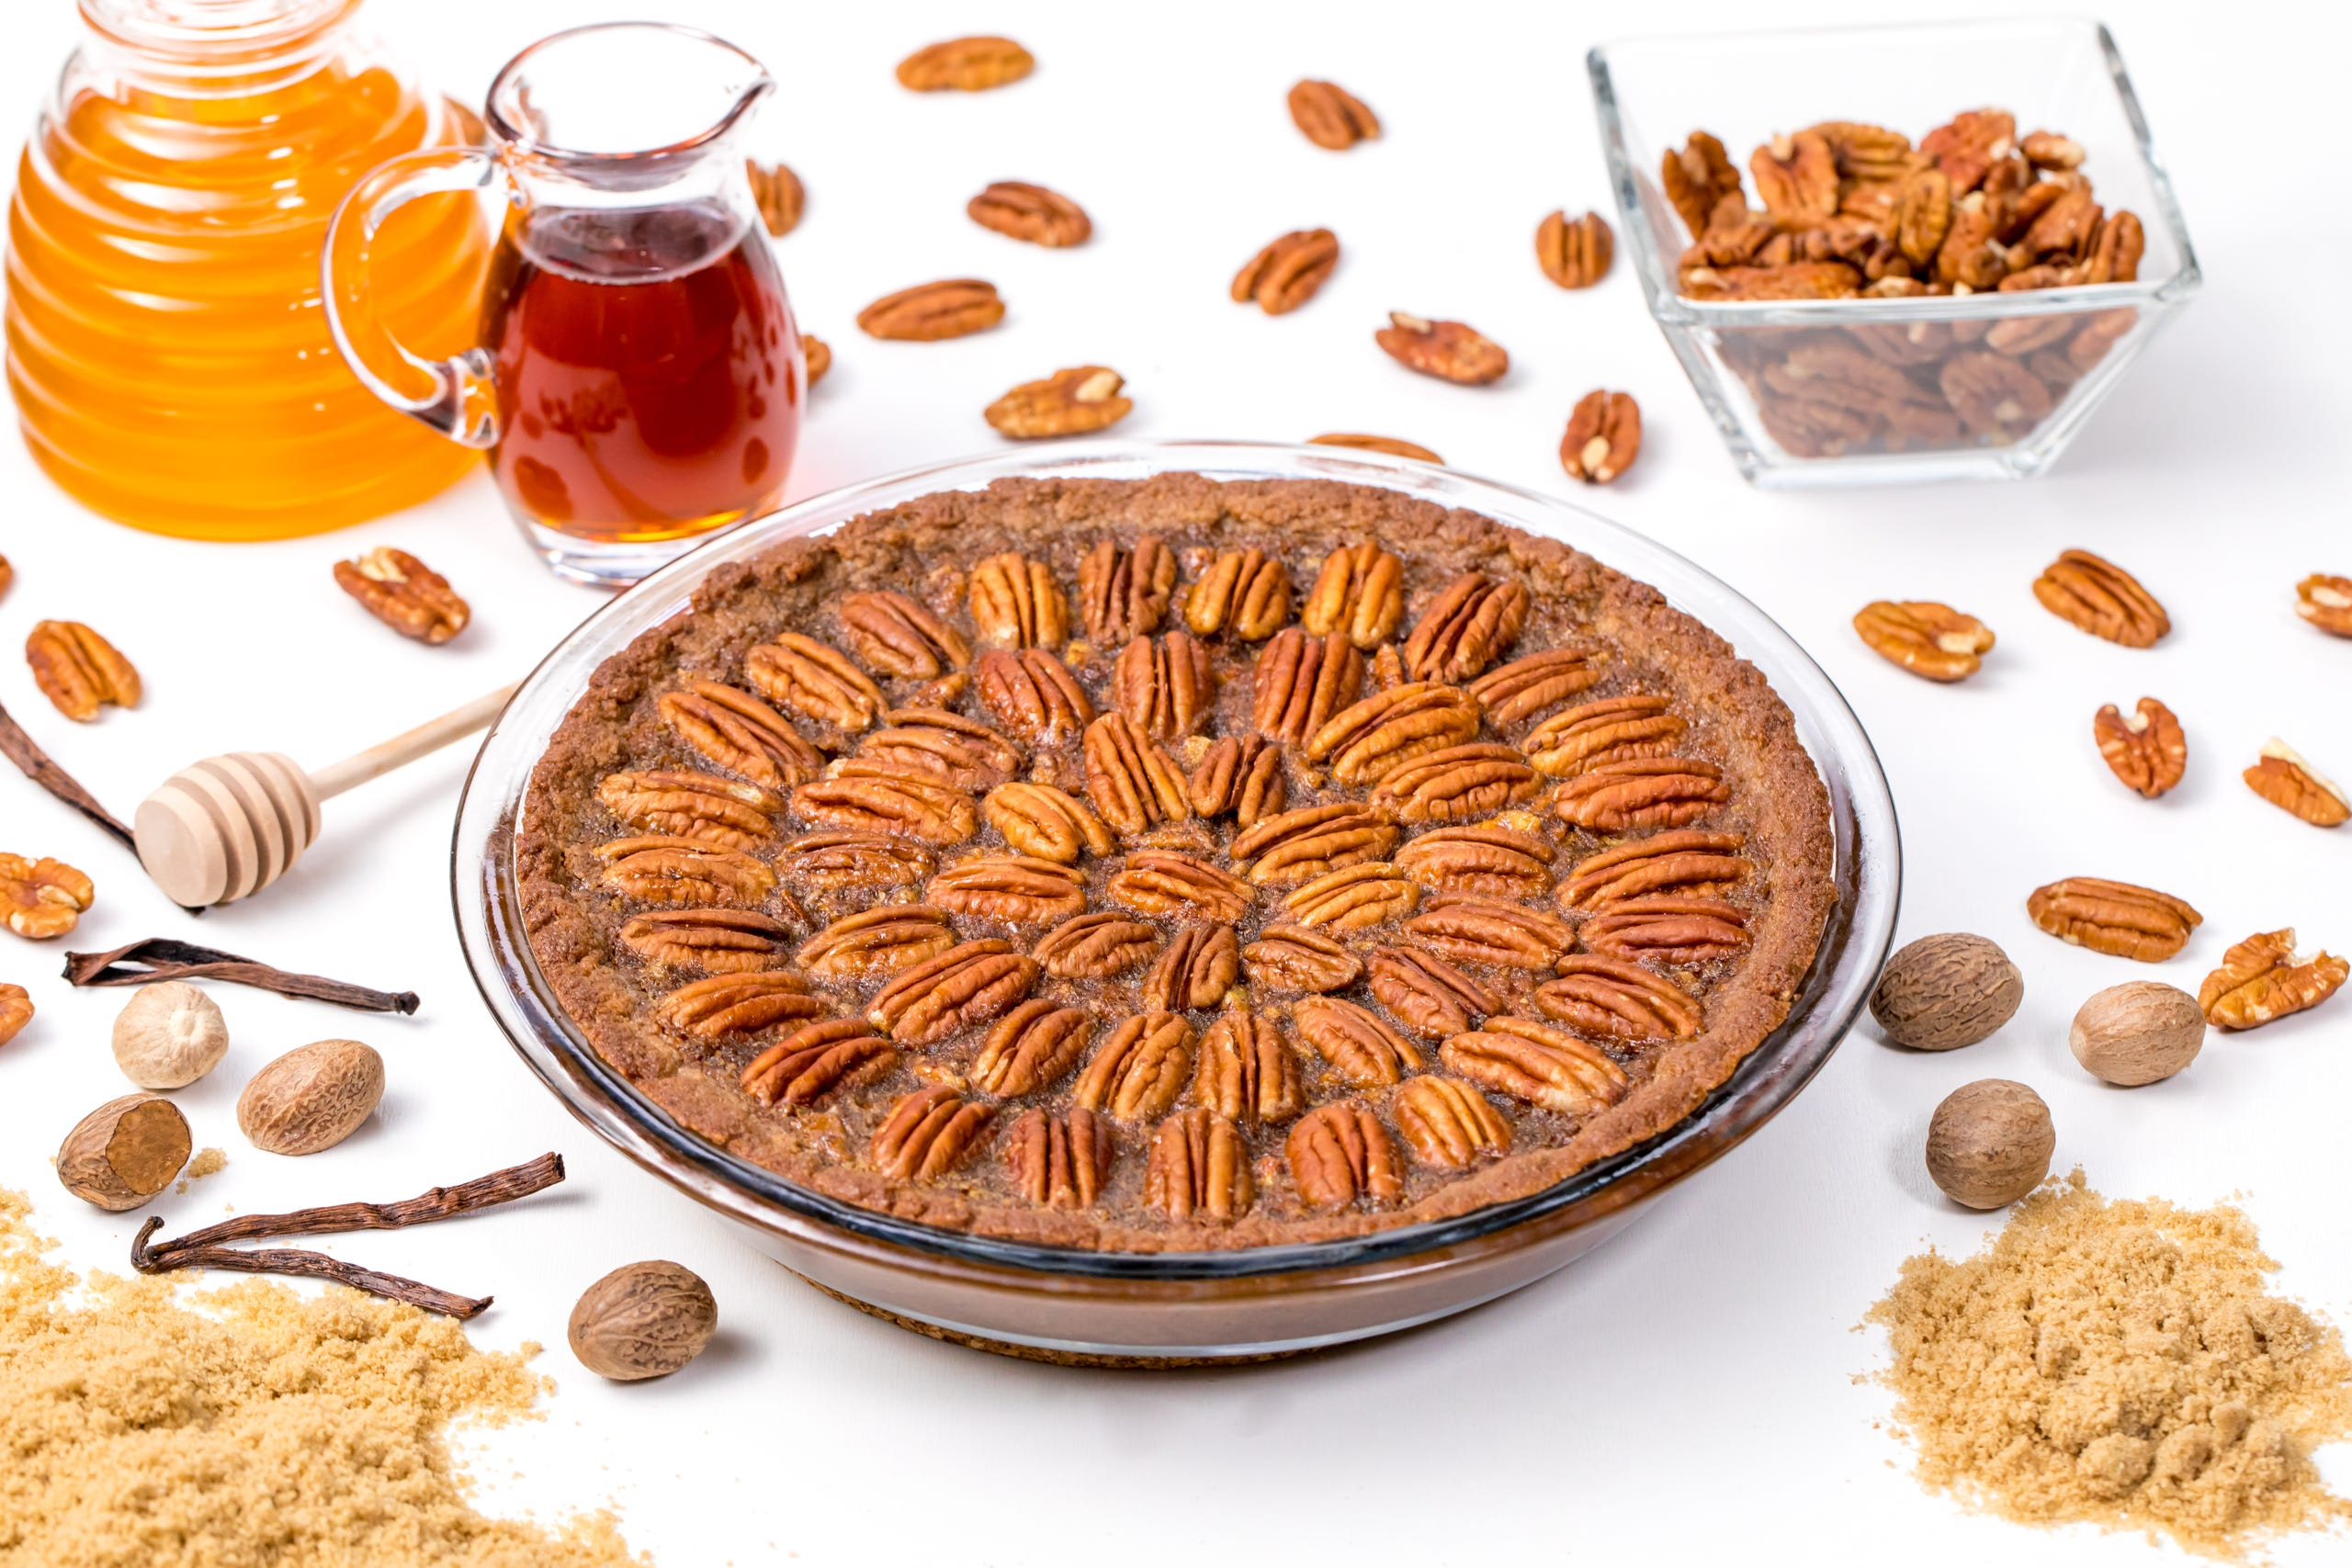 """Pecan pie is a beloved favorite for many, but traditional pecan pie recipes are not vegan — at all. Eggs (usually multiple) and butter are mainstays of this delightful dish. Is is possible to make a <a href=""""https://www.thanksgiving.com/recipes/dessert-recipes/vegan-pecan-pie?utm_source=veganvalentinesdesserts"""" target=""""_blank"""">vegan pecan pie</a>, like this one inspired by<a href=""""https://chocolatecoveredkatie.com/2017/12/11/vegan-pecan-pie-recipe/"""" rel="""